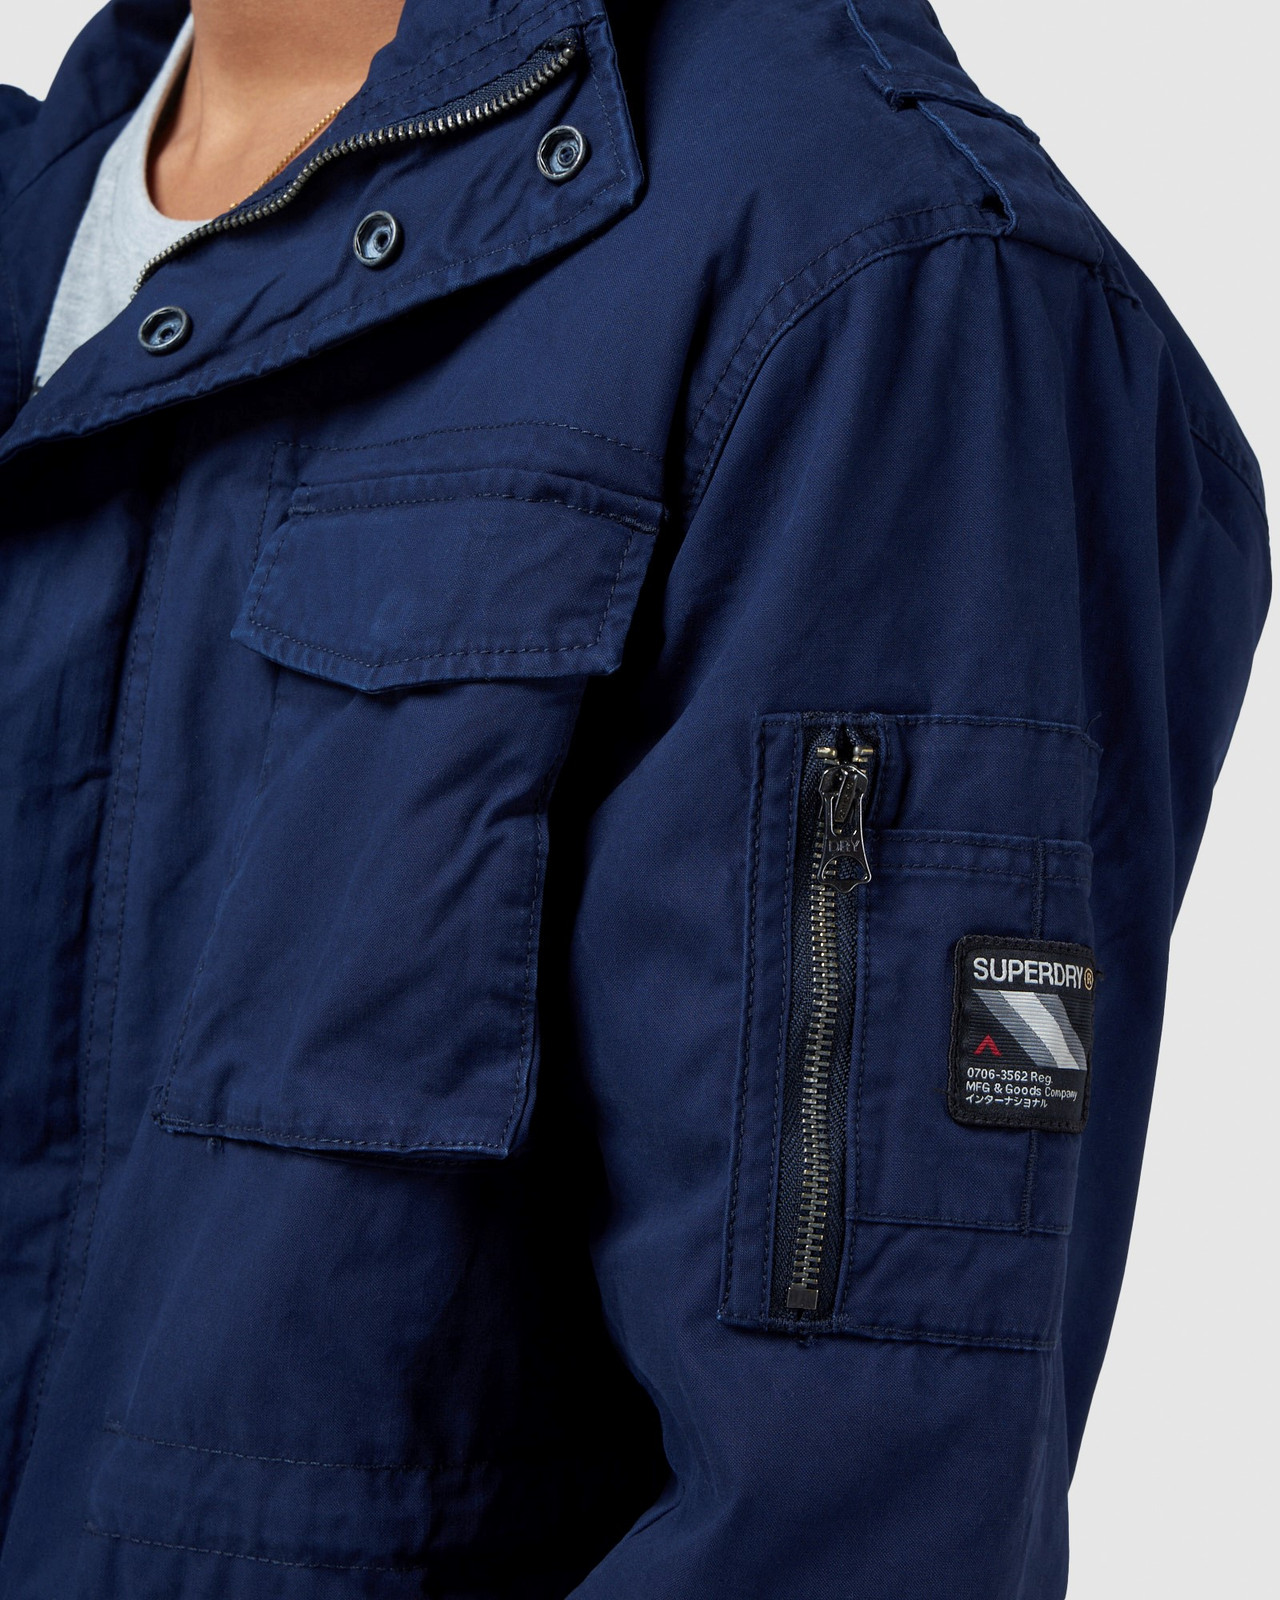 Superdry Mens CLASSIC RECRUIT JACKET Navy Military Jackets 6